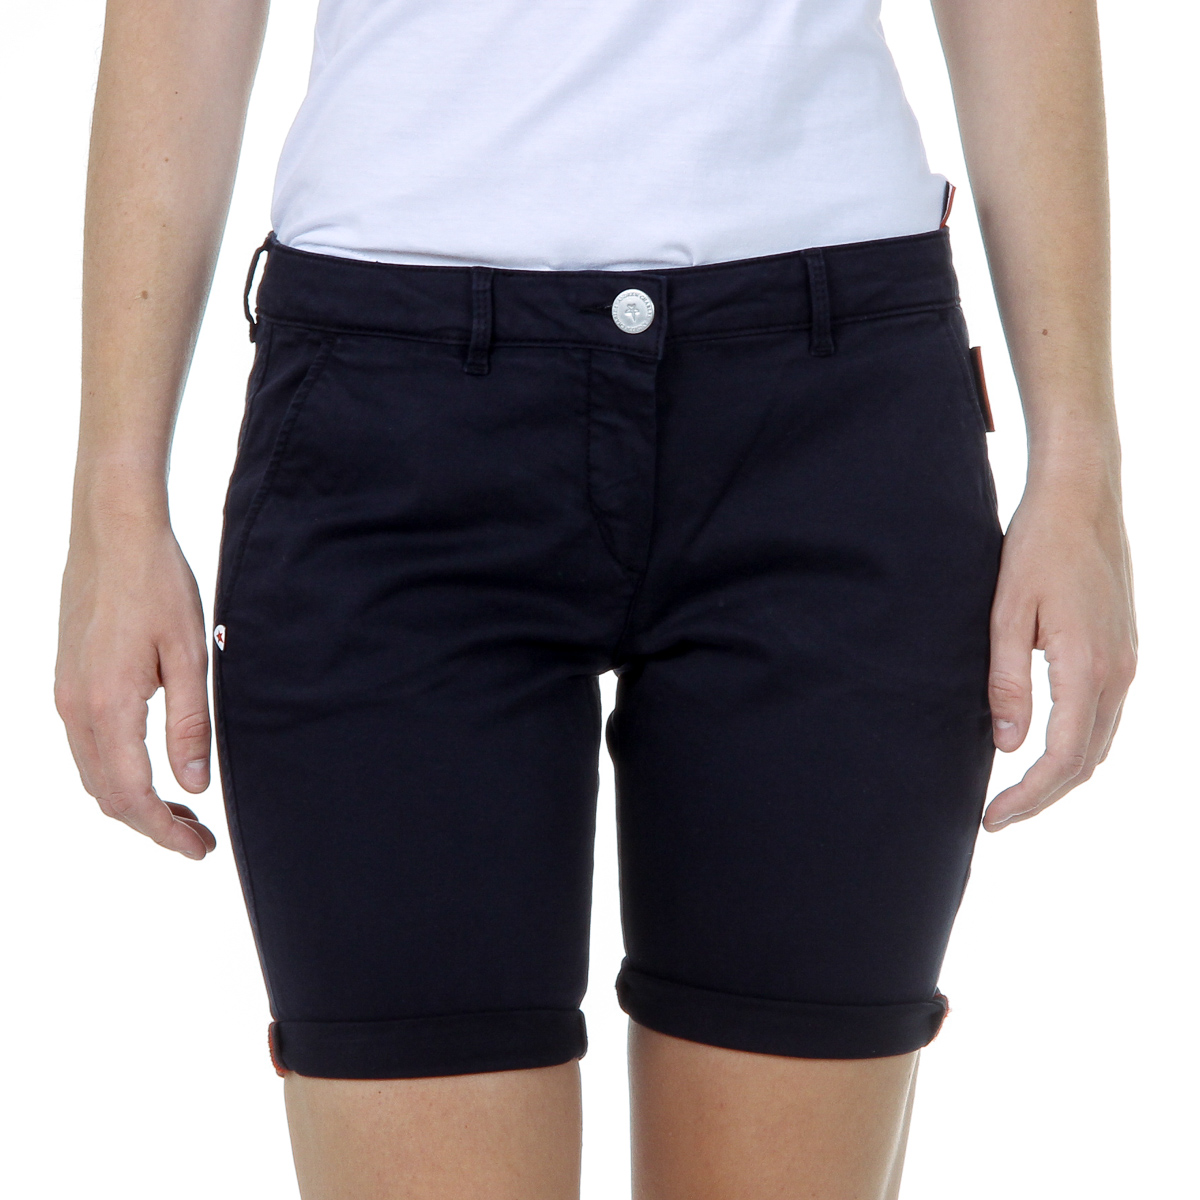 Primary image for Andrew Charles Womens Shorts Dark Blue SAFIA